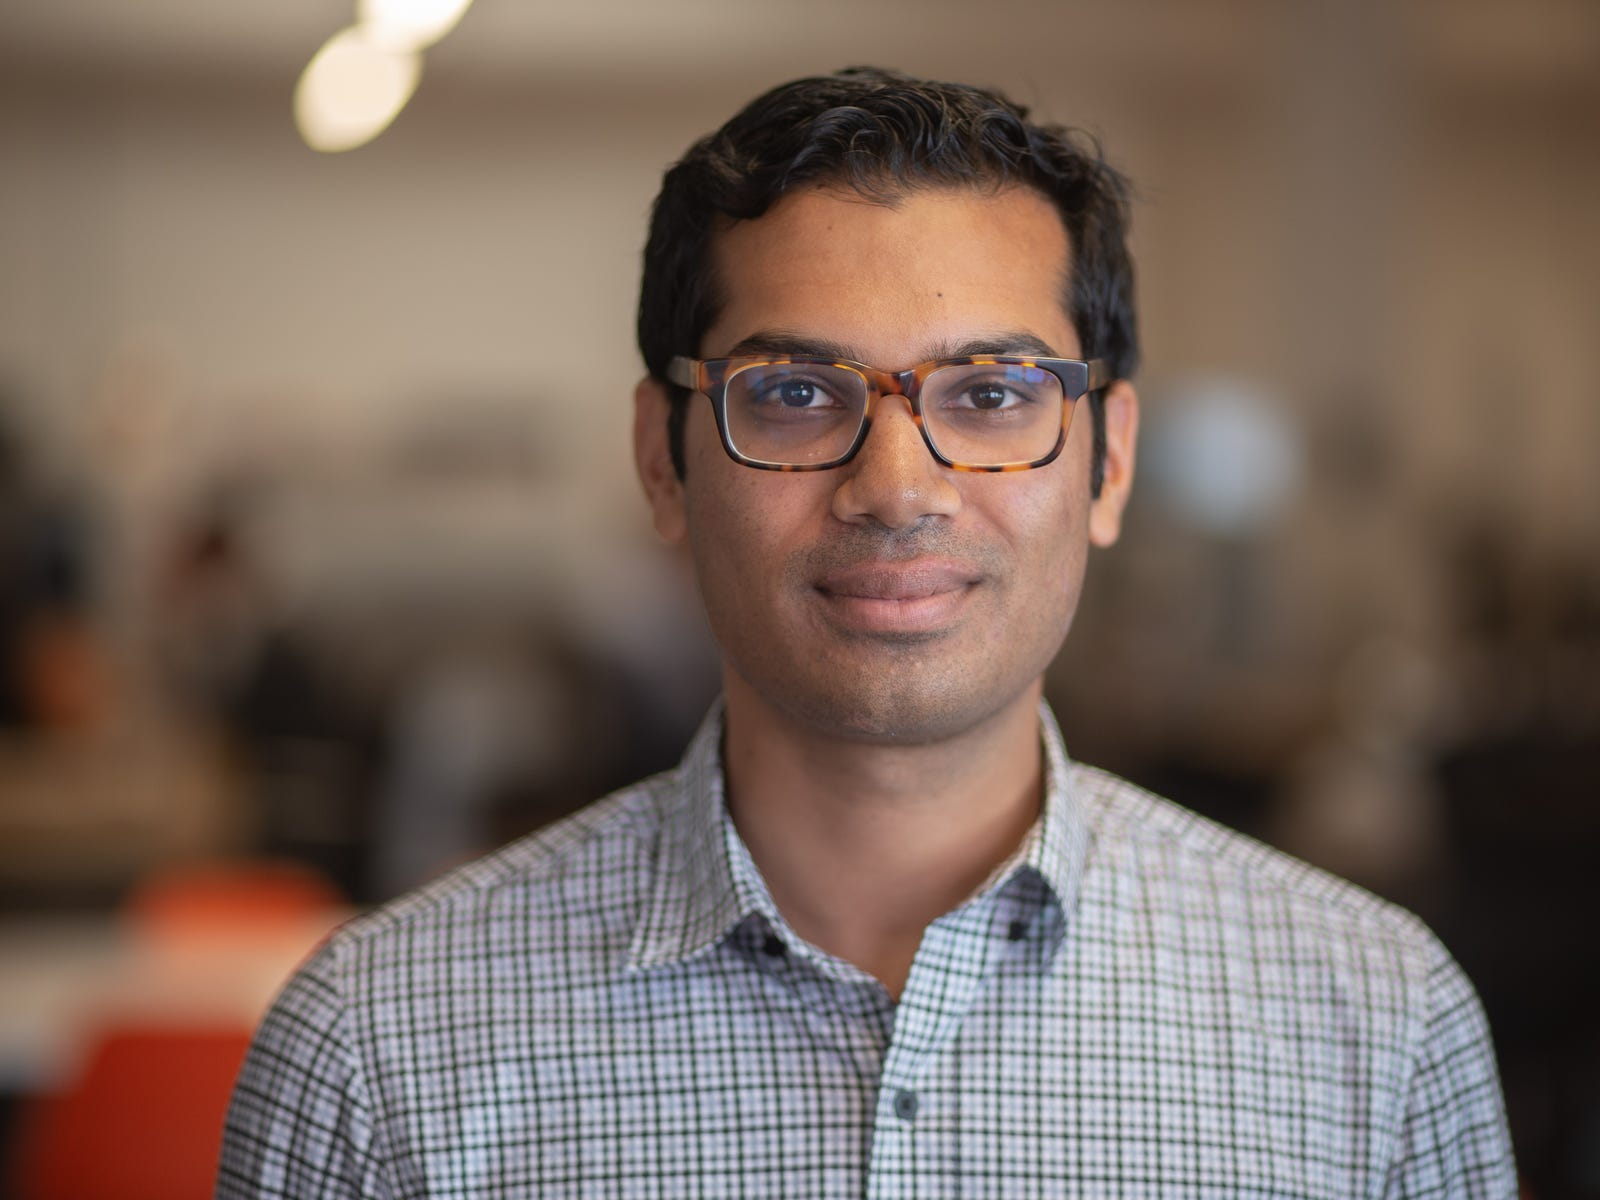 Business Insider : The 29-year-old founder of Impira used this pitch deck to raise $32 million for its AI